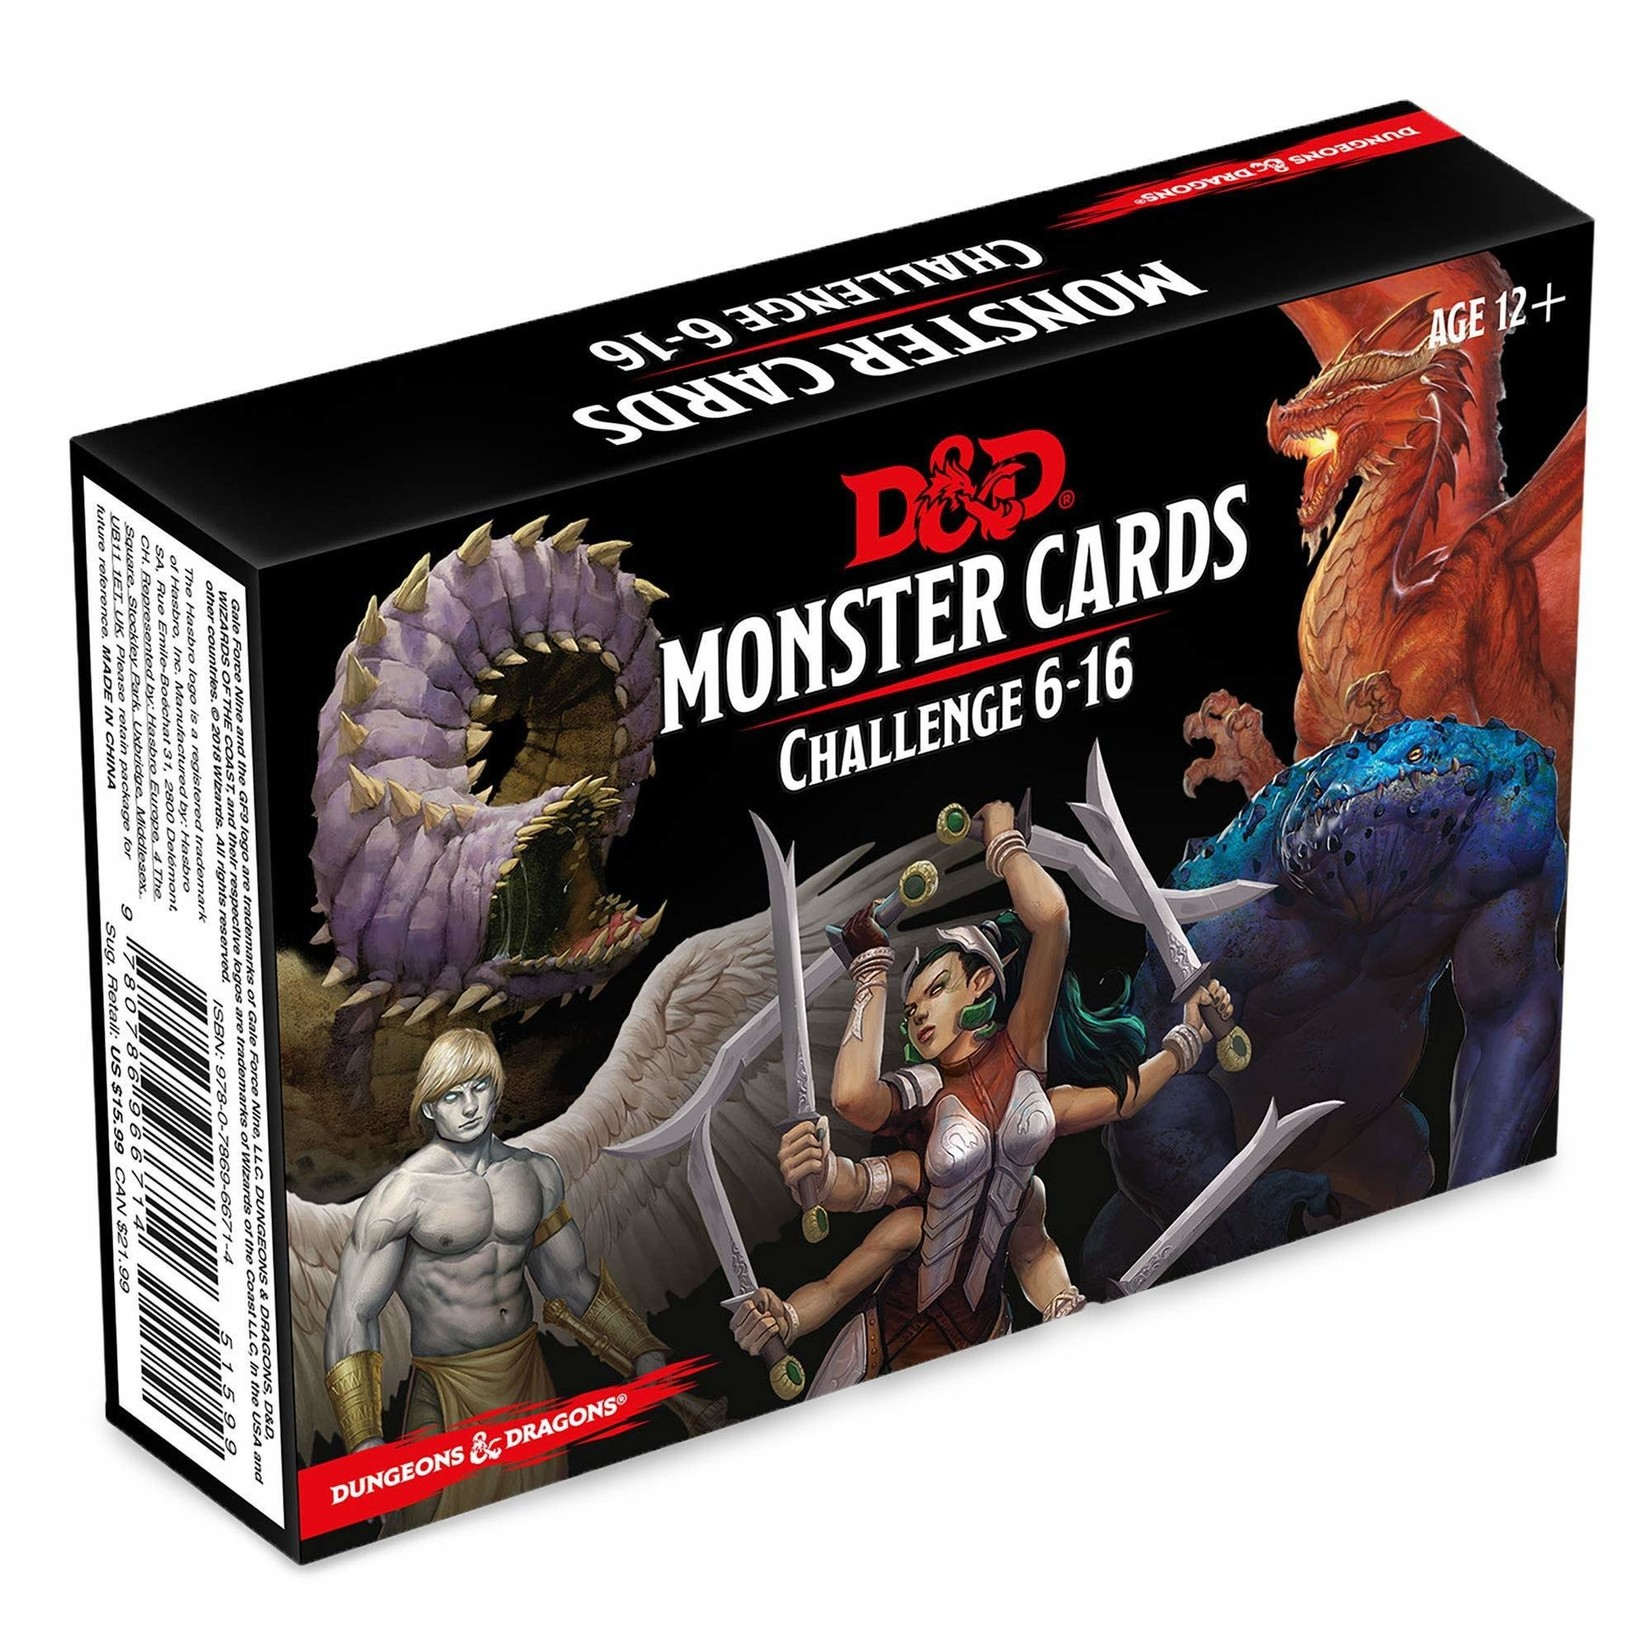 Wizards of the Coast D&D Spellbook Cards Monster Cards Challenge 6-16